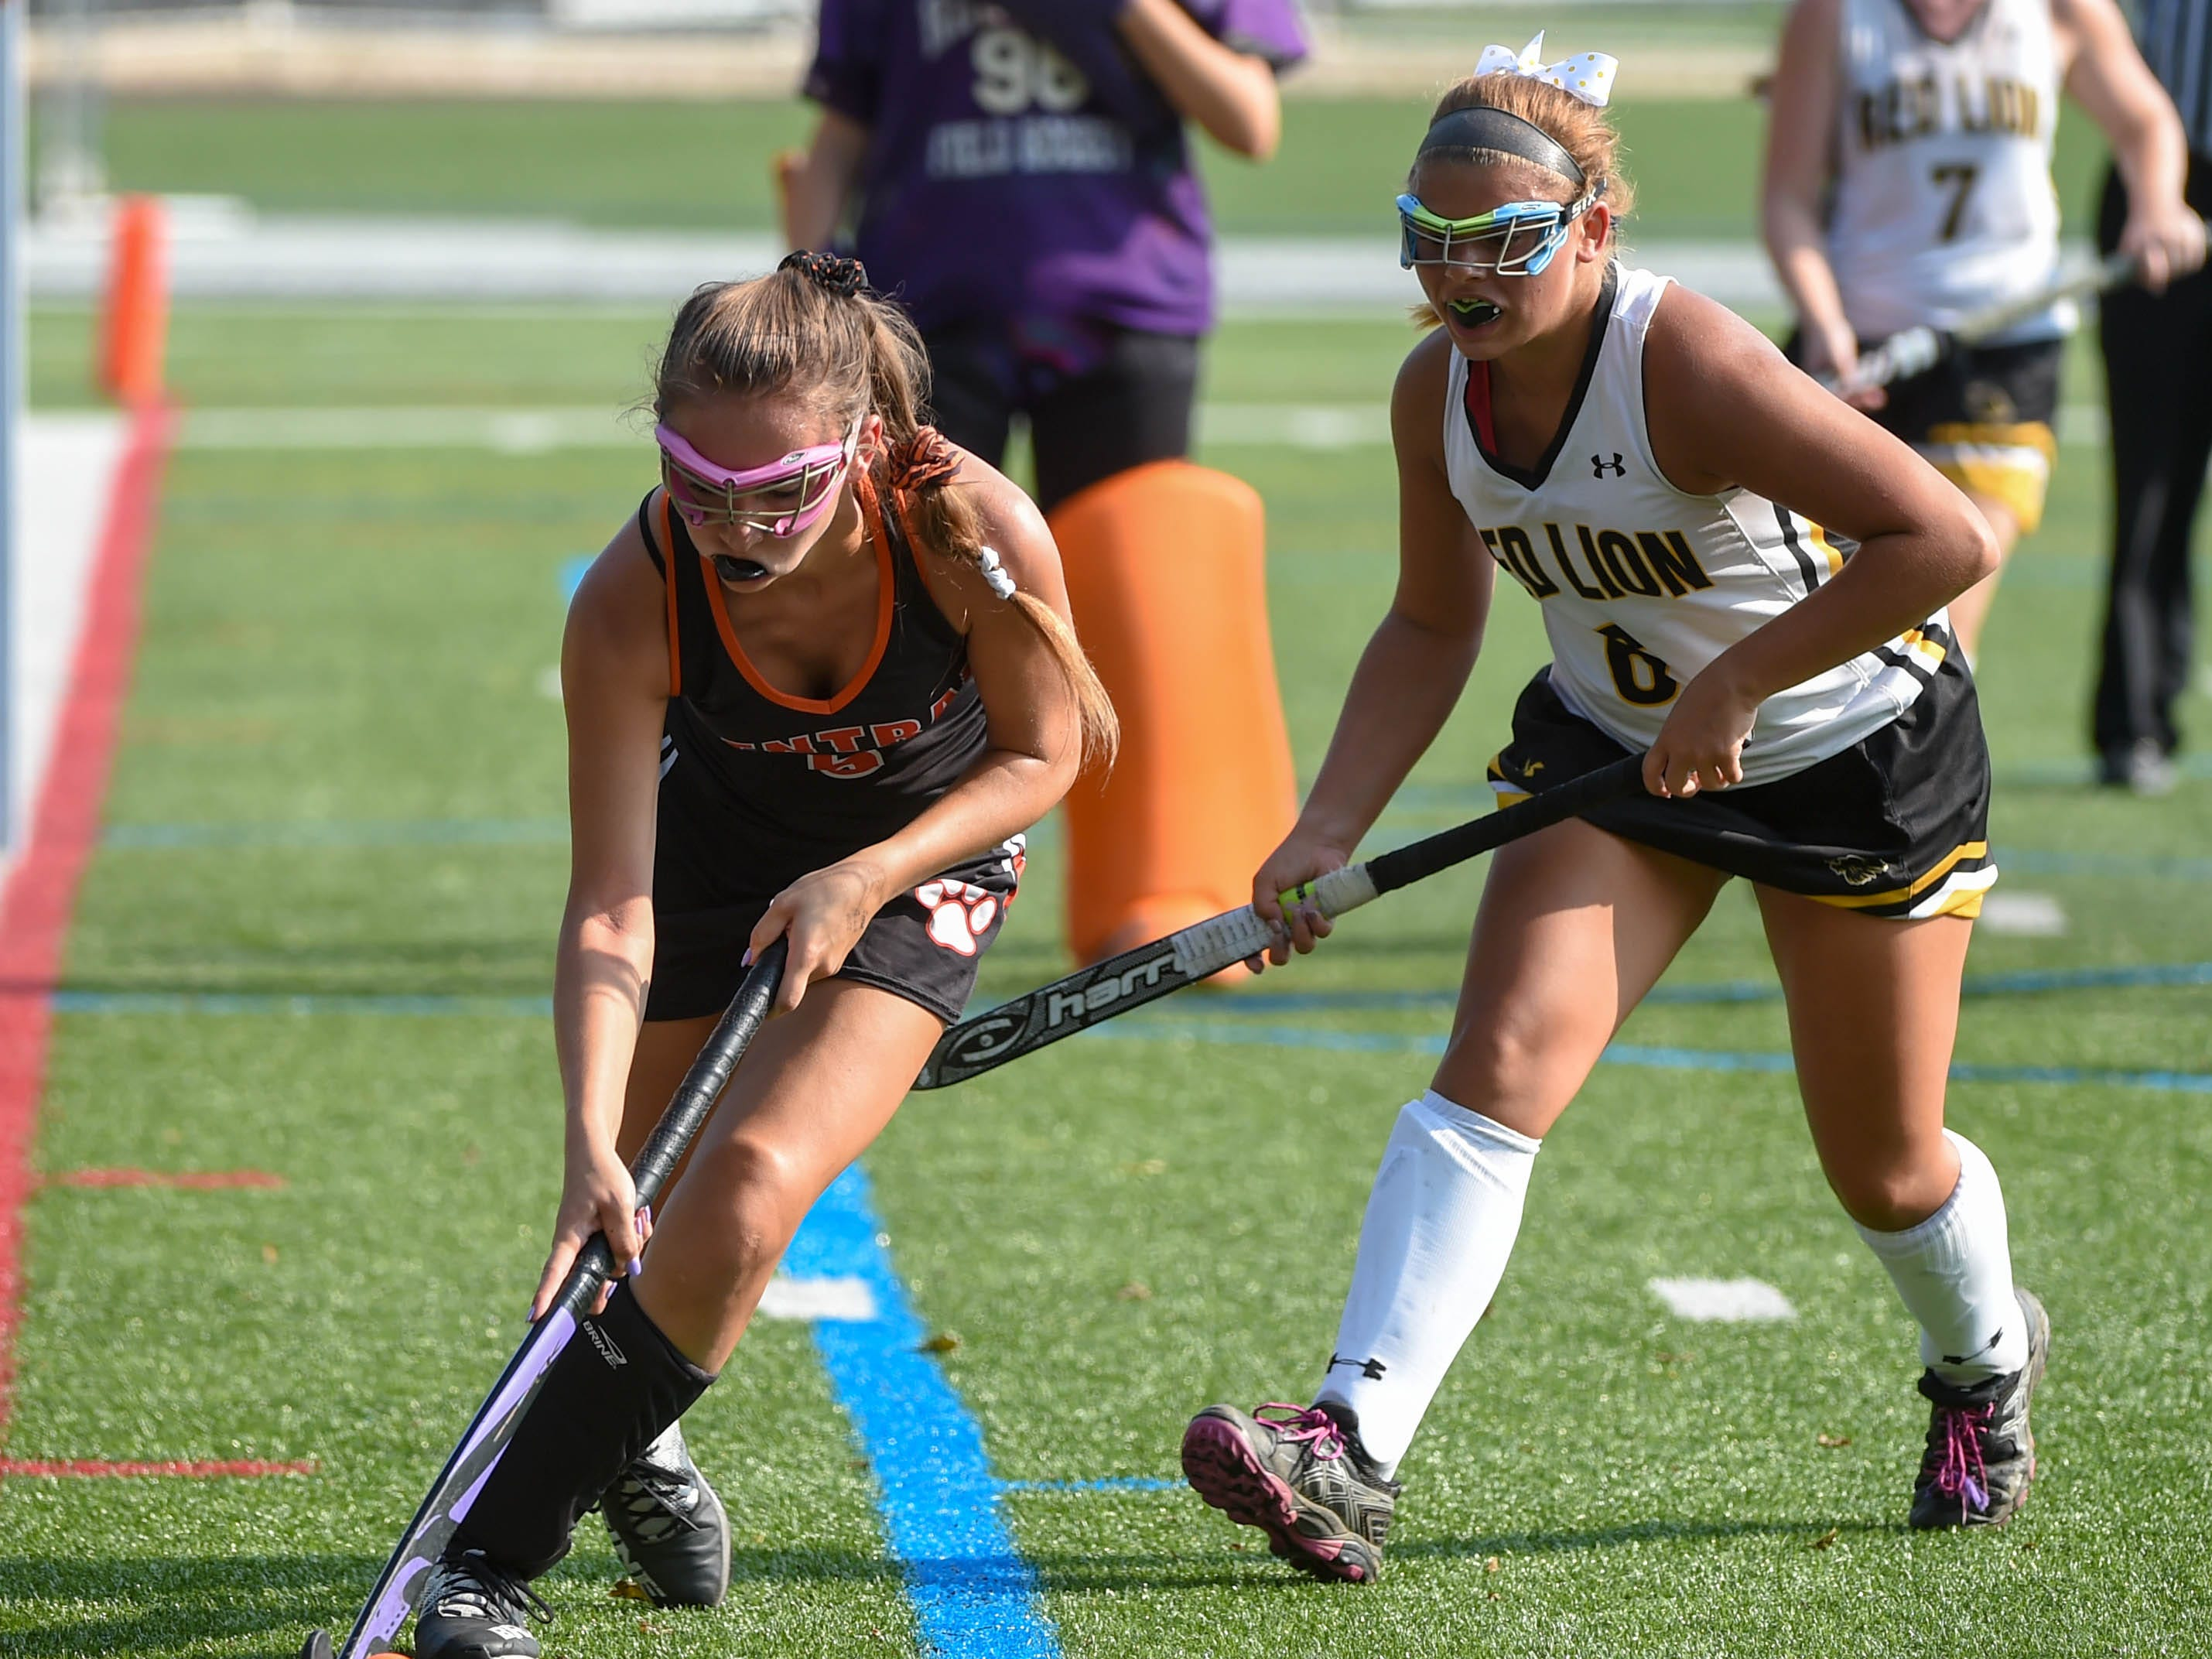 Caroline Blalock (5) takes the ball up the sideline during the Division I girls field hockey game between Red Lion and Central York, Wednesday, September 19, 2018.